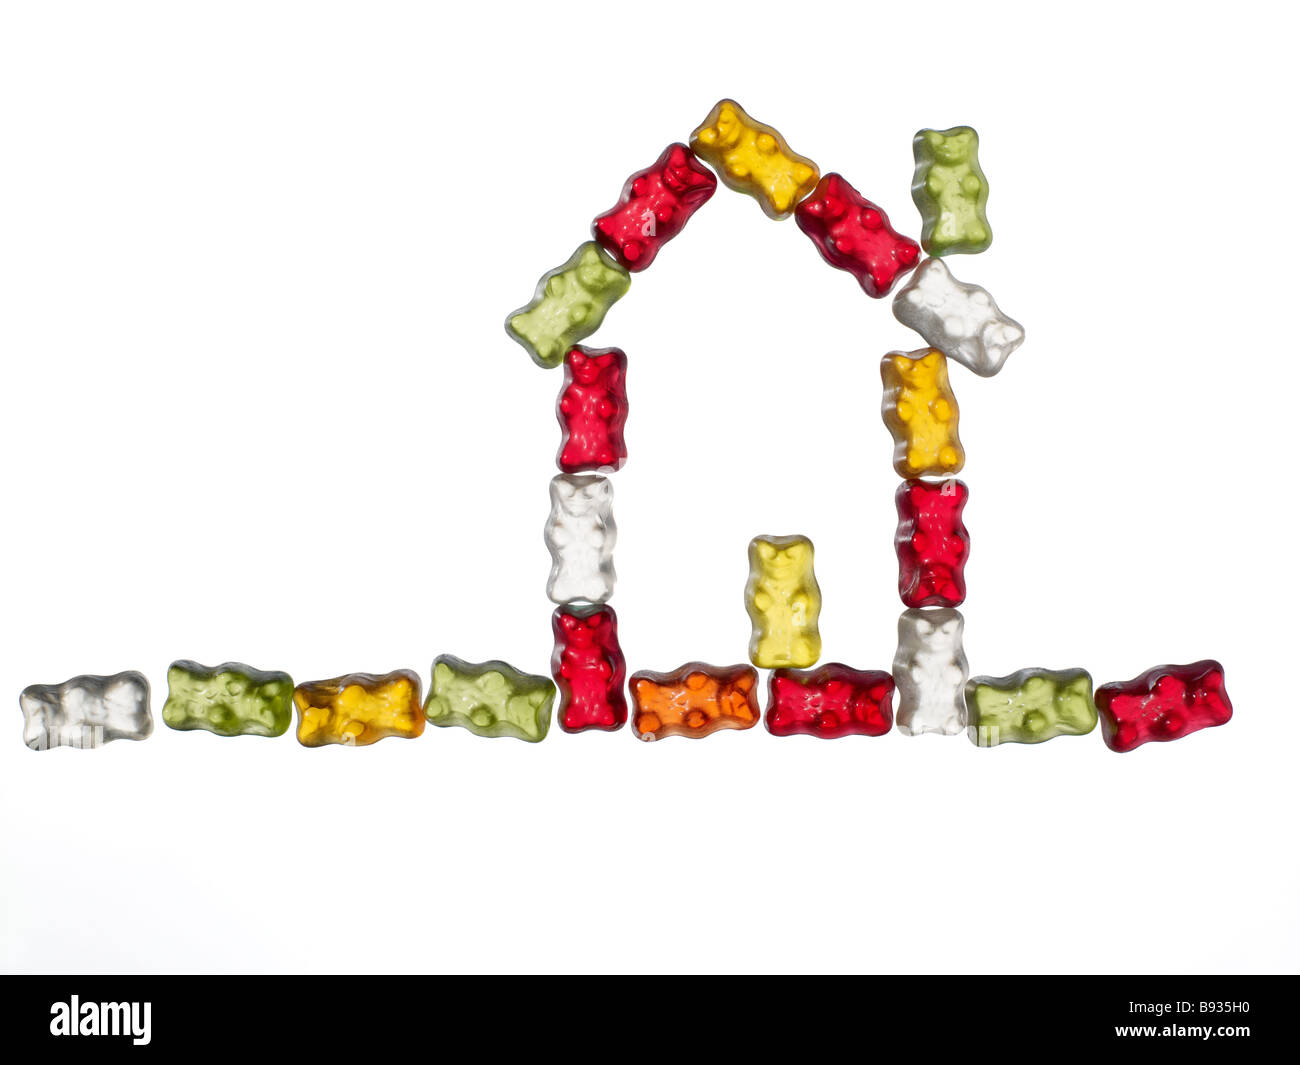 jellybabies formed as a house on white background - Stock Image